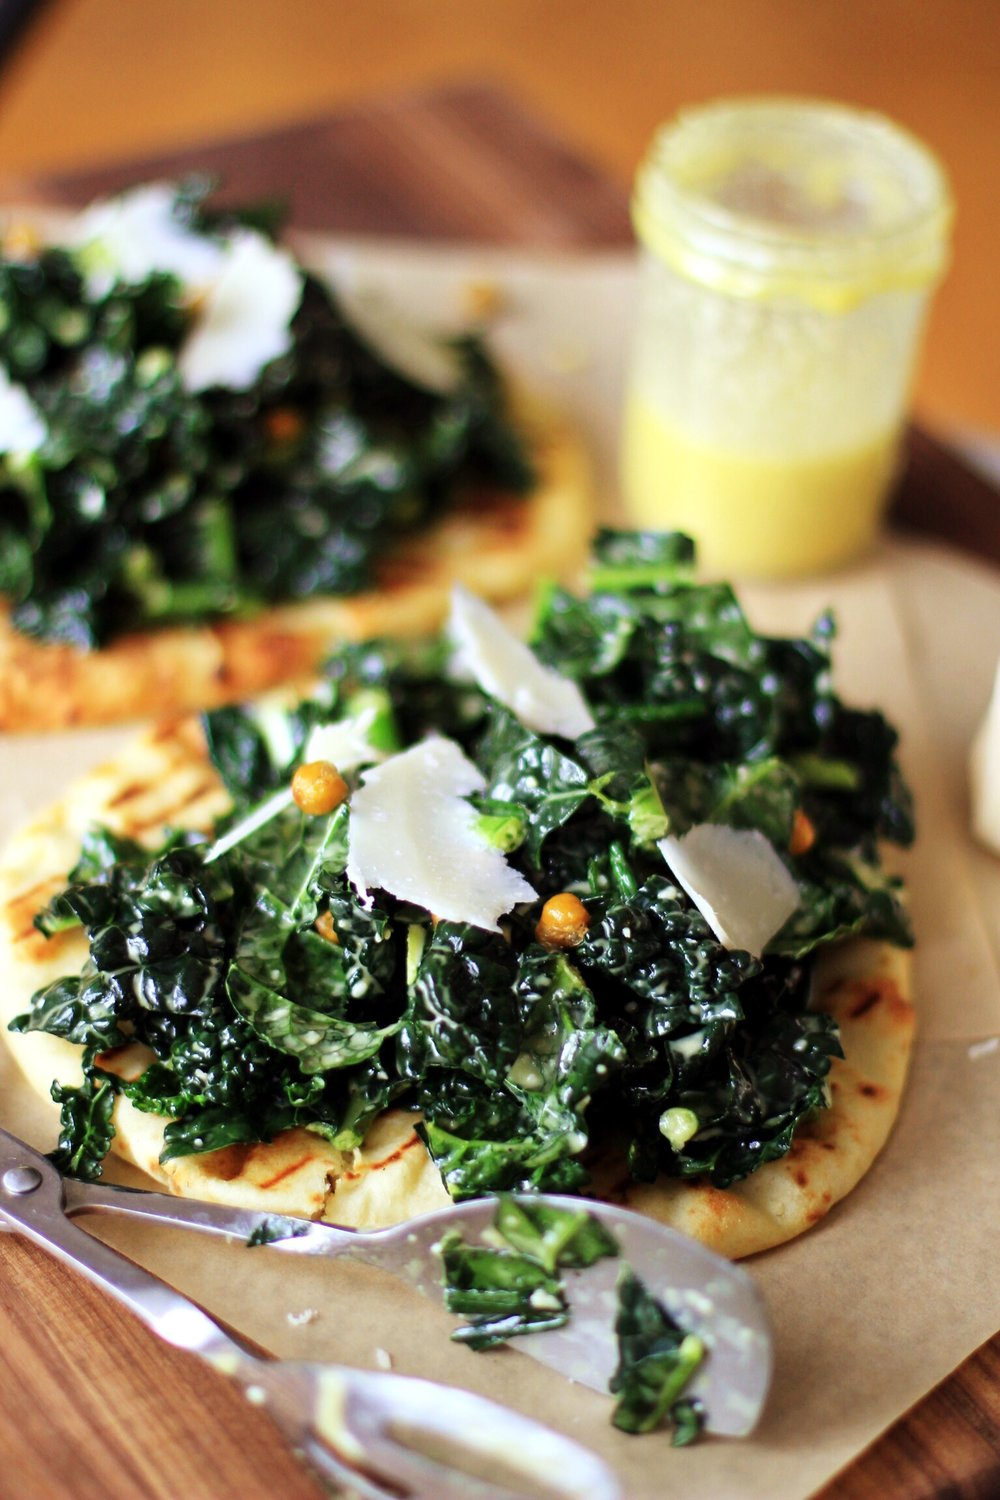 Kale Caesar on naan flatbread